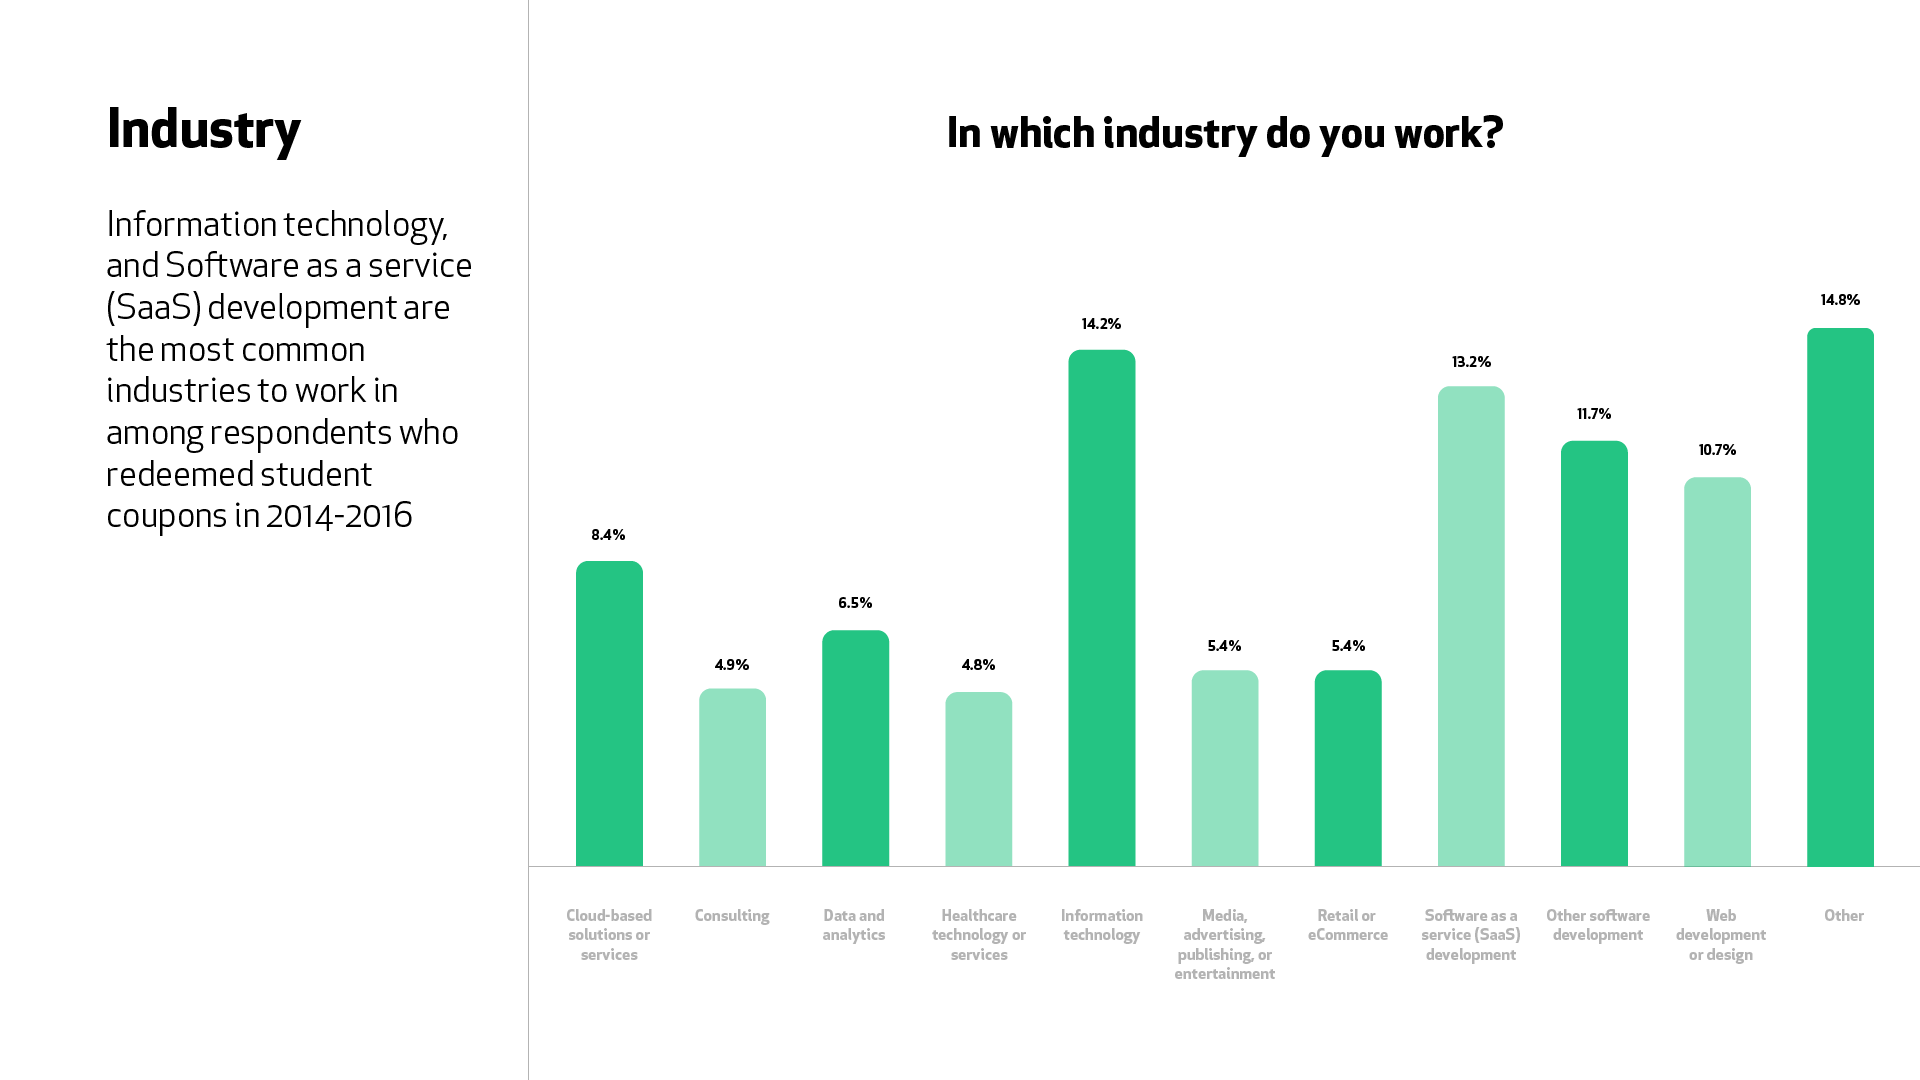 """A graph for the question """"In which industry do you work?"""" Information technology (14.2%) and Software as a service (SaaS) (13.2%) are the most common industries reported by students who joined 2014-2016."""